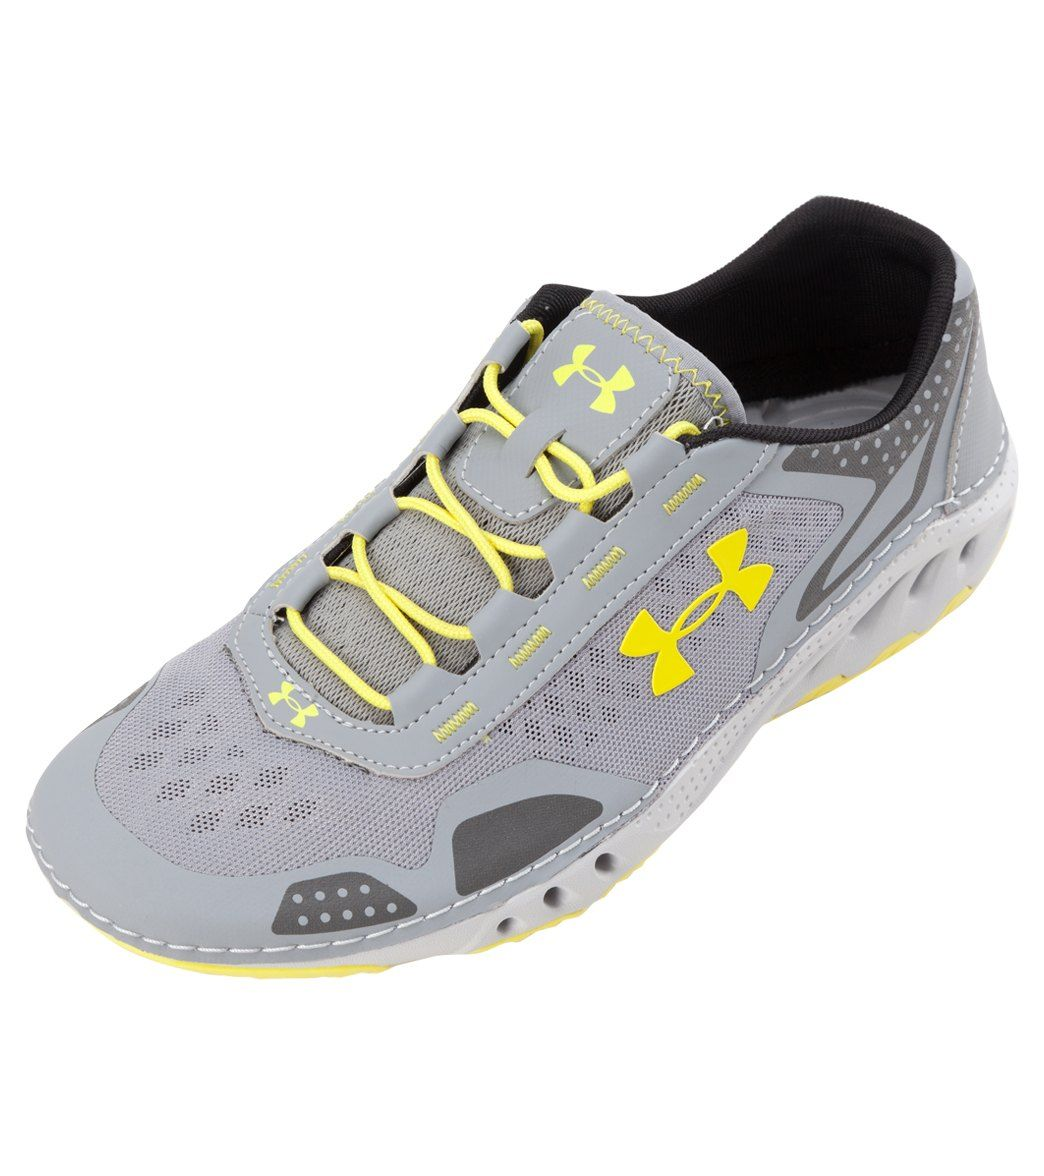 6410ba8a10b8 Under Armour Women s Drainster Water Shoes at SwimOutlet.com - Free Shipping